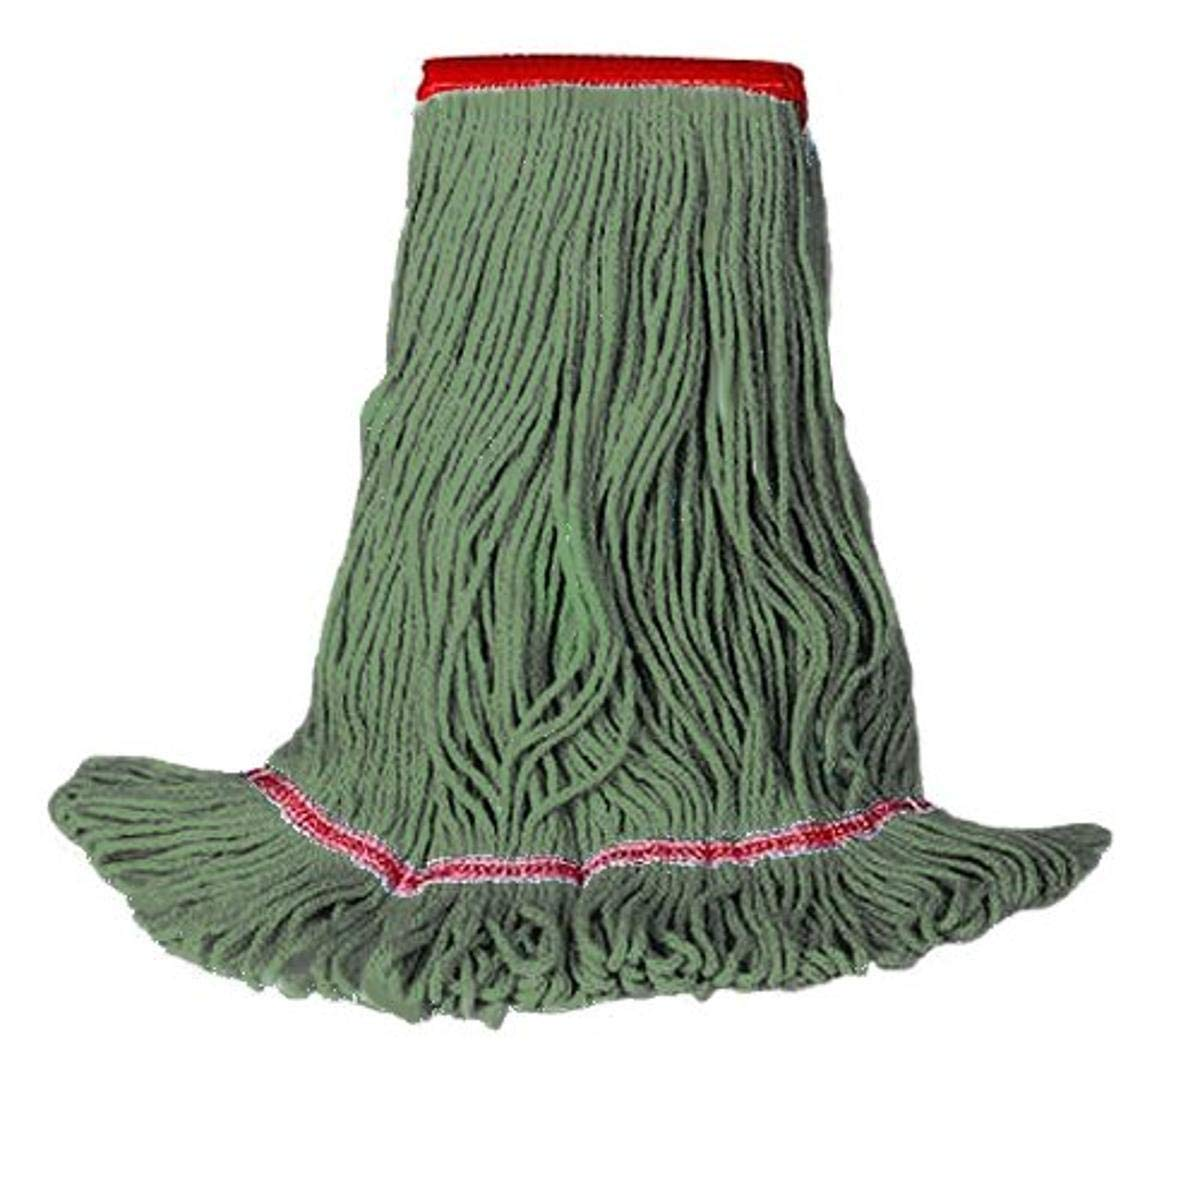 HUB Cheap mail order sales City Industries 80XLG NB Green Sale special price Looped Mops for Ready-Made Qu